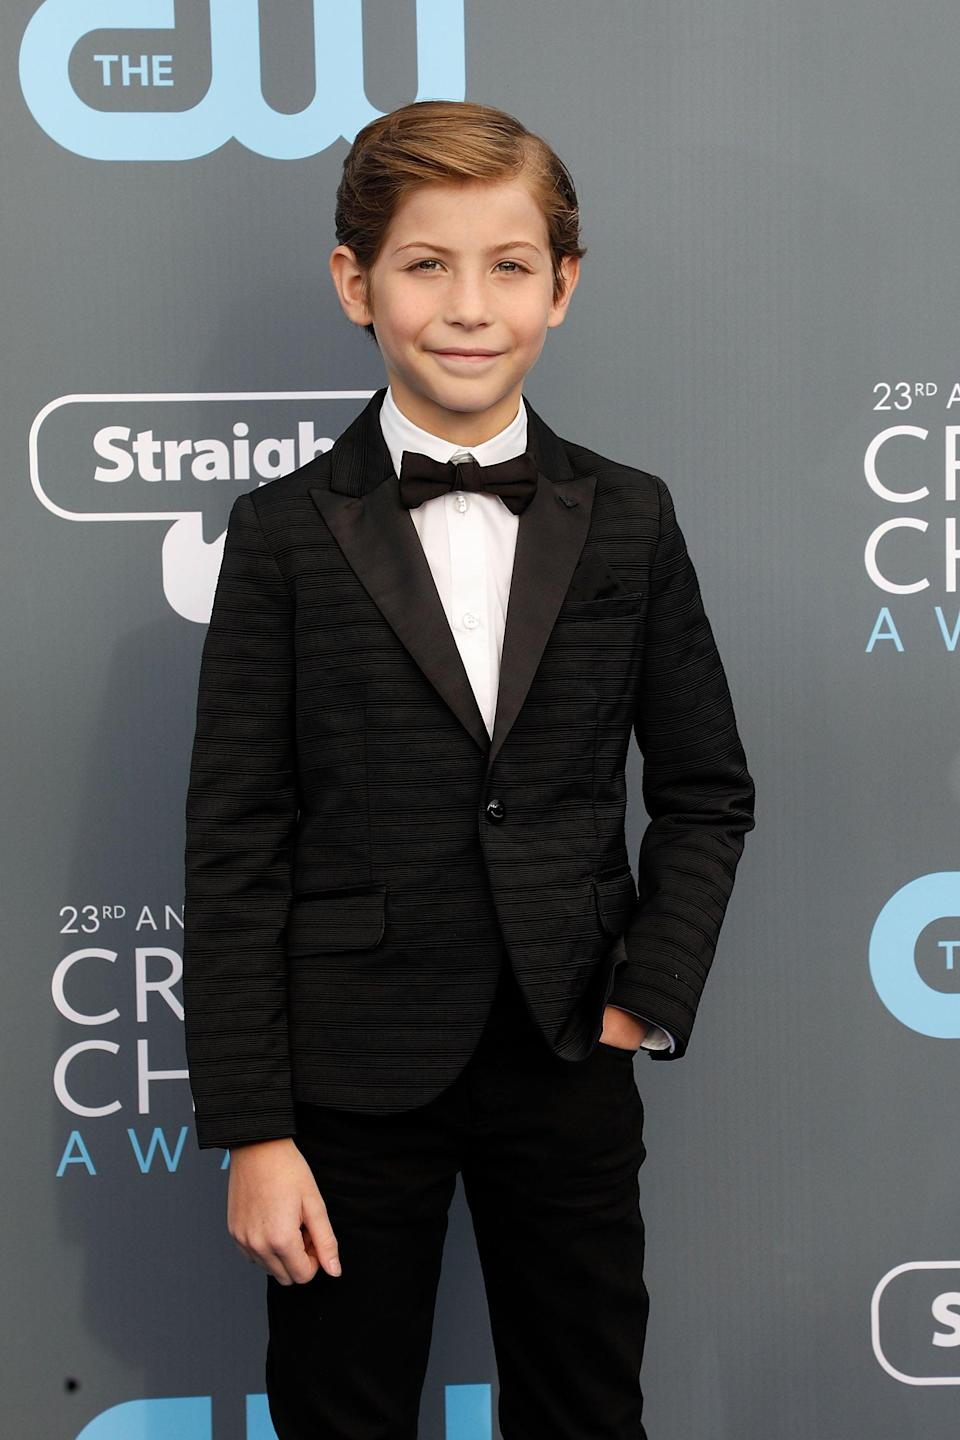 "<p>According to <strong>Deadline</strong>, the 12-year-old actor, who gained critical acclaim for his role in <strong>Room</strong>, is <a href=""http://deadline.com/2019/07/the-little-mermaid-awkwafina-jacob-tremblay-disney-reboot-1202640587/"" class=""link rapid-noclick-resp"" rel=""nofollow noopener"" target=""_blank"" data-ylk=""slk:being considered for the role of Ariel's fish friend, Flounder"">being considered for the role of Ariel's fish friend, Flounder</a>. </p>"